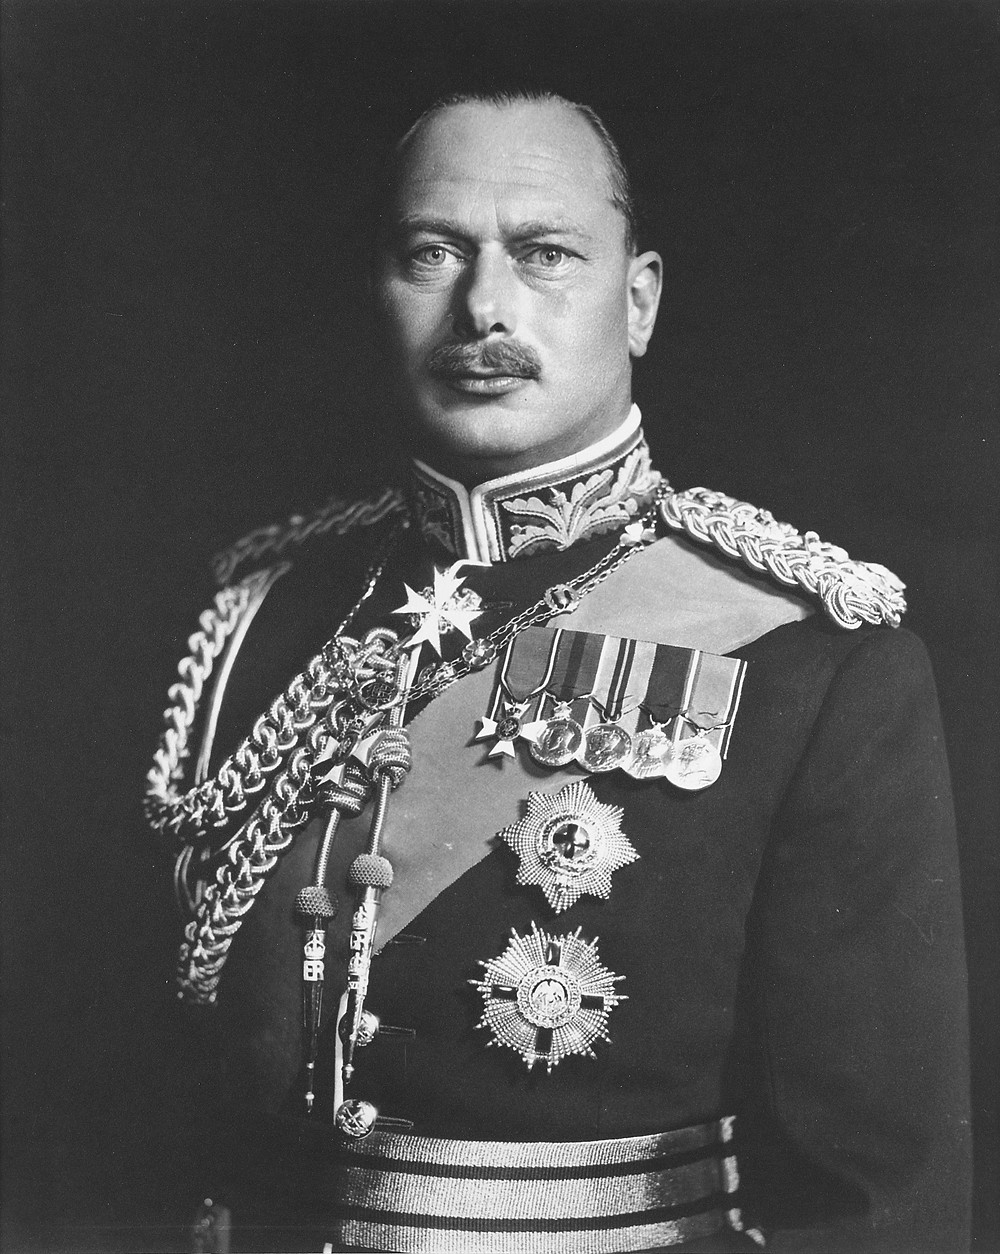 Prince Henry, Duke of Gloucester, KG, KT, KP, GCB, GCMG, GCVO, PC (Henry William Frederick Albert; 31 March 1900 – 10 June 1974) was the third son and fourth child of King George V and Queen Mary. He served as Governor-General of Australia from 1945 to 1947, the only member of the British royal family to hold the post. portrait taken in about 1945. Royal family. British monarchy